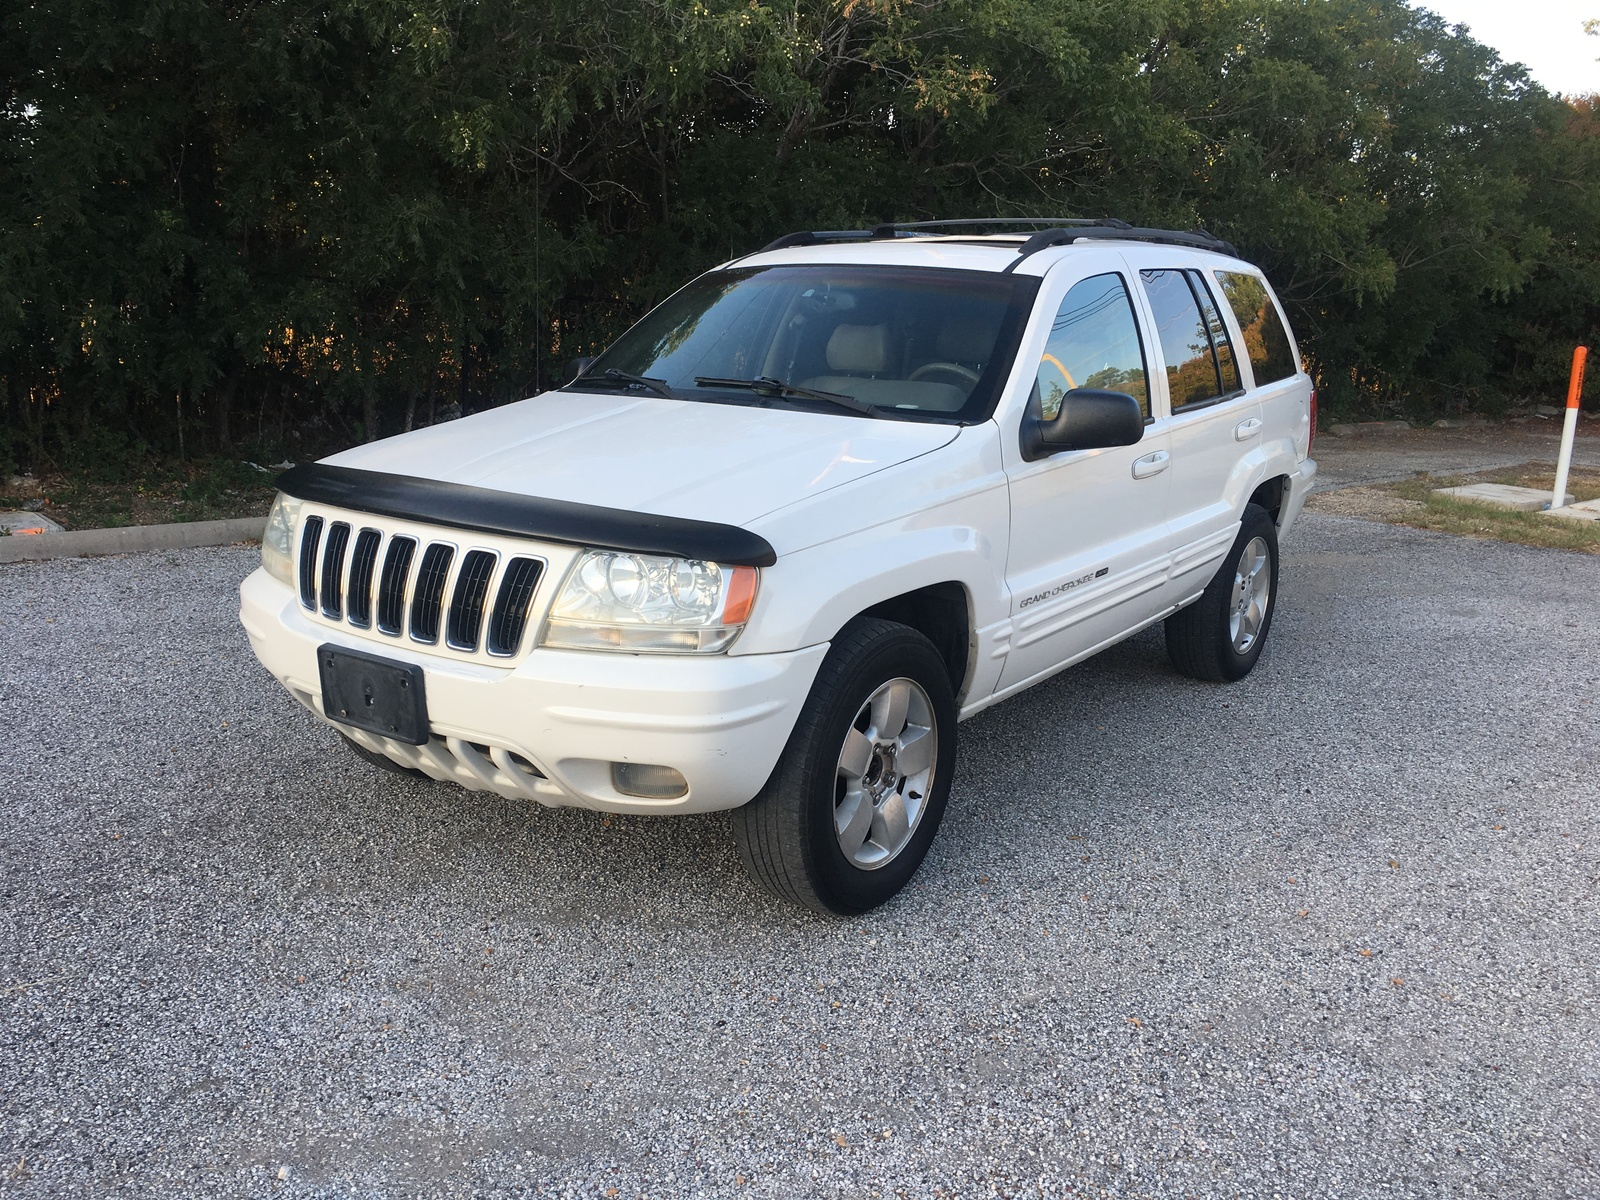 2001 Jeep Grand Cherokee - Overview